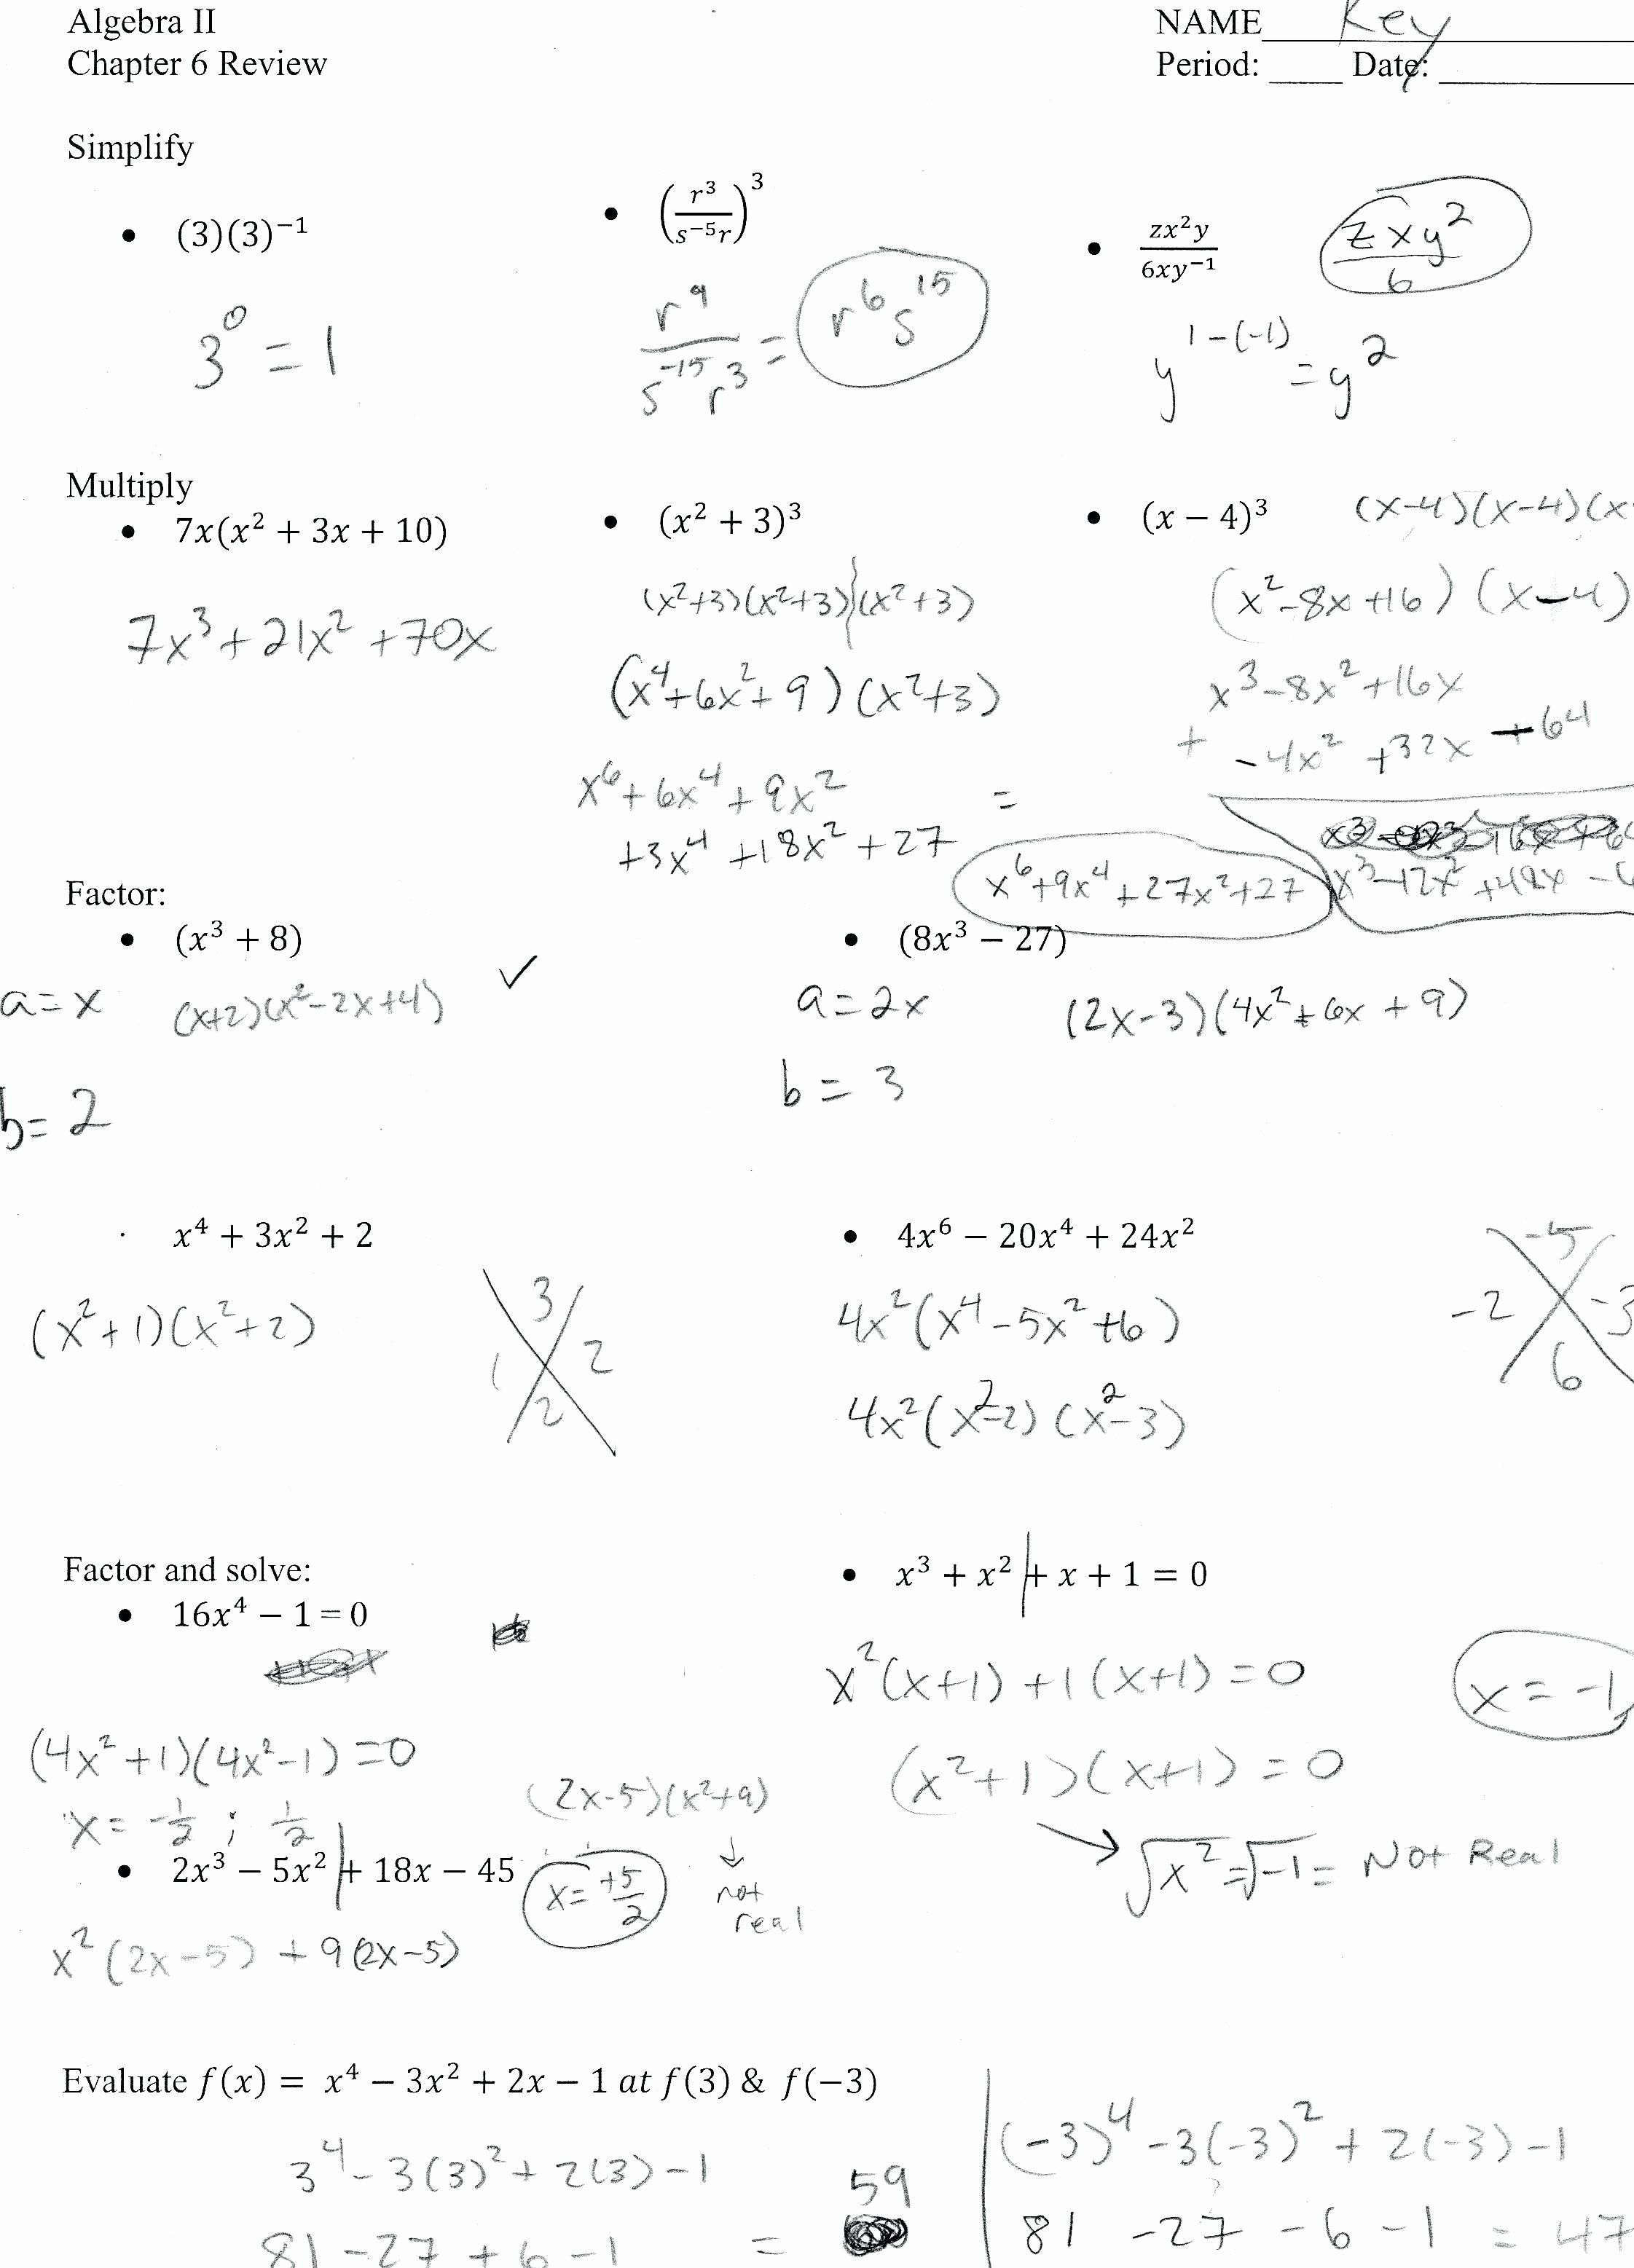 Algebra 2 Review Worksheet Fresh Worksheets Algebra 2